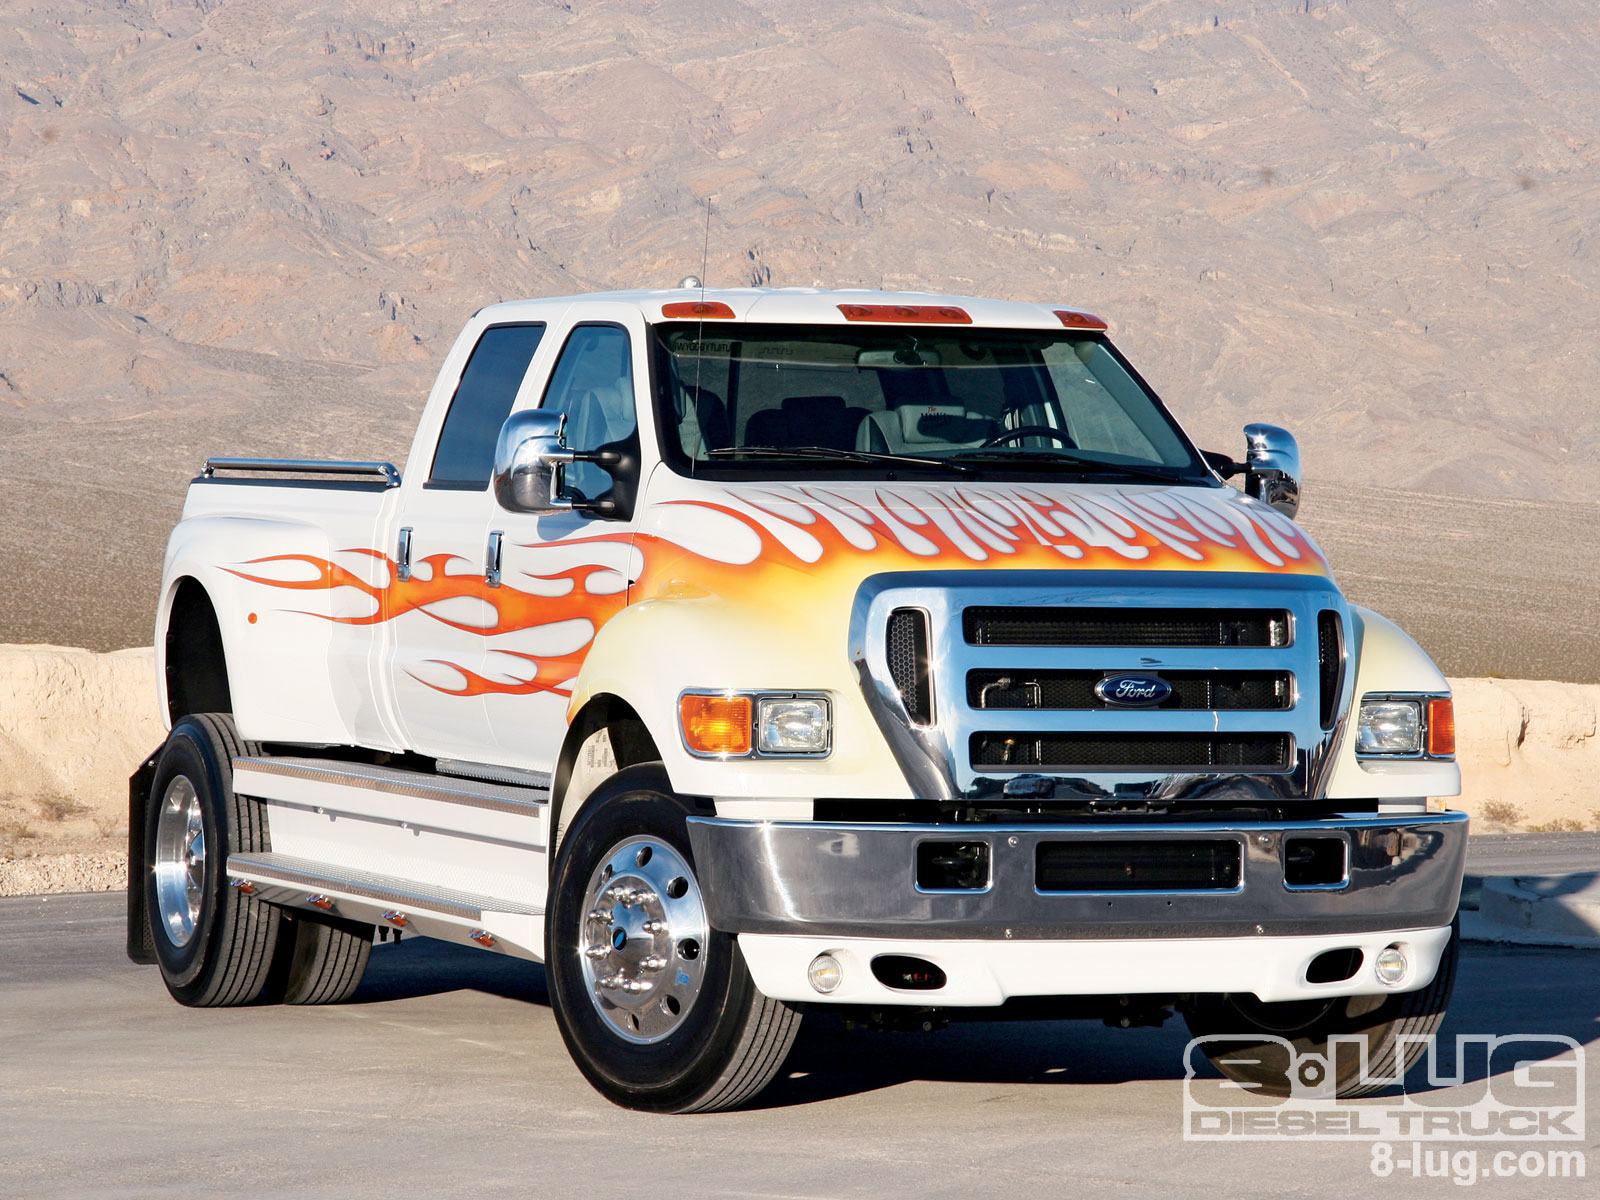 2007 Ford F-650 #10